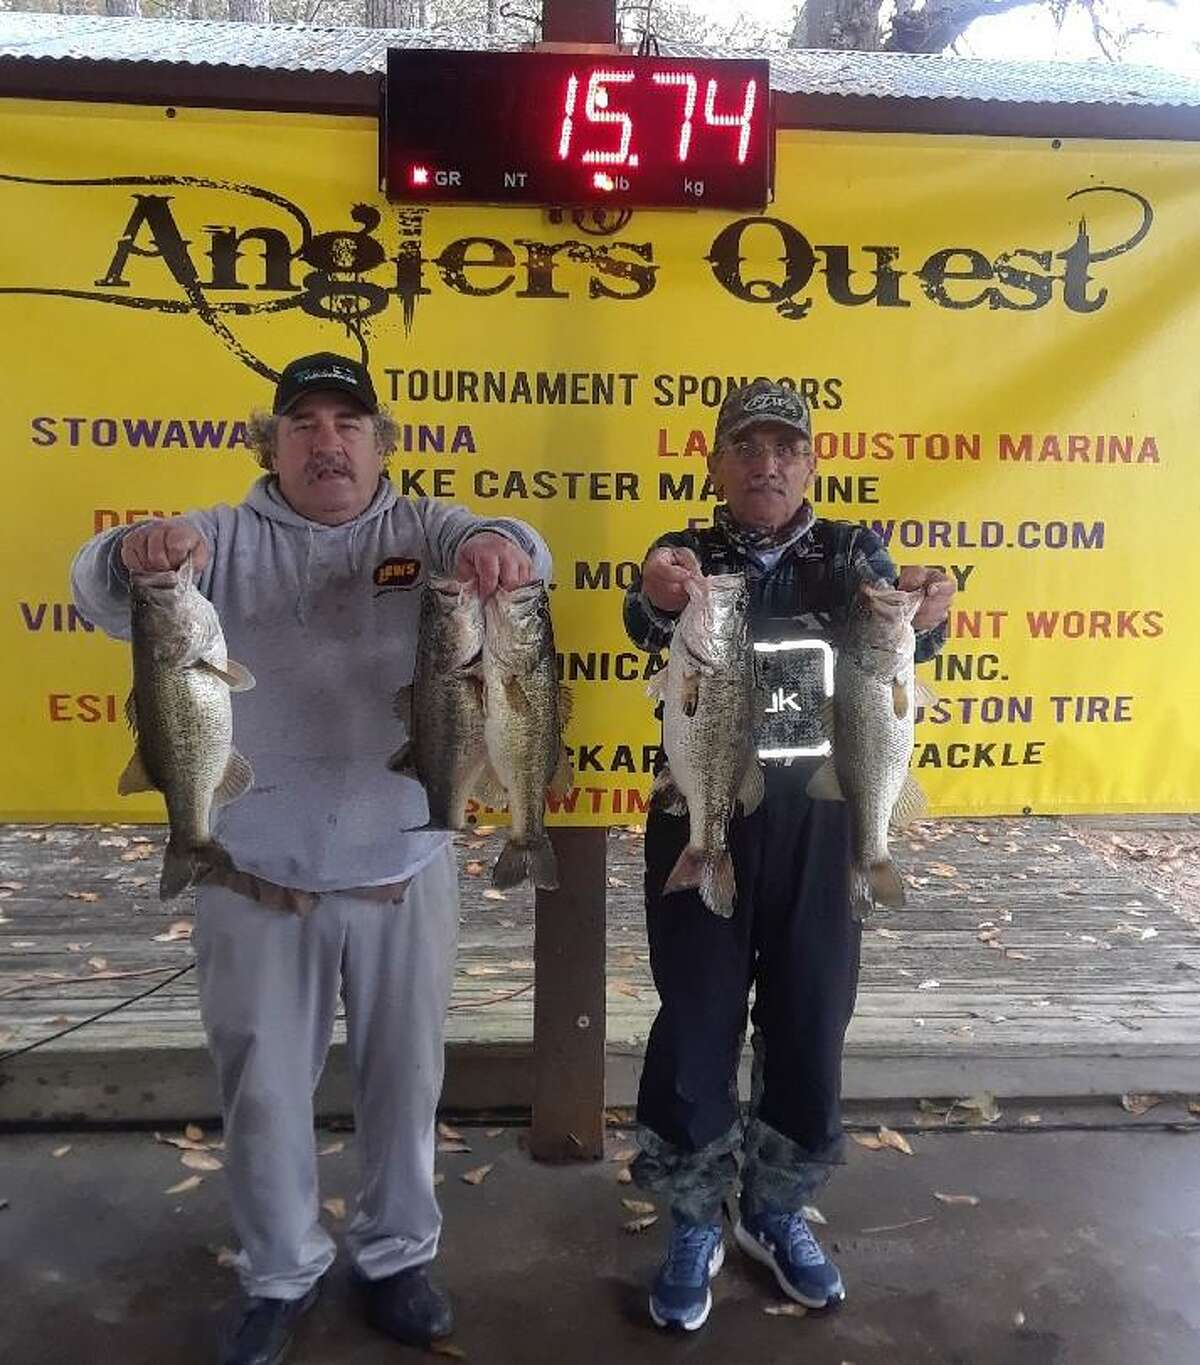 Jerry Watson and Mike Watson came in fourth place in the Anglers Quest Team Tournament #1 with a total weight of 15.74 pounds.